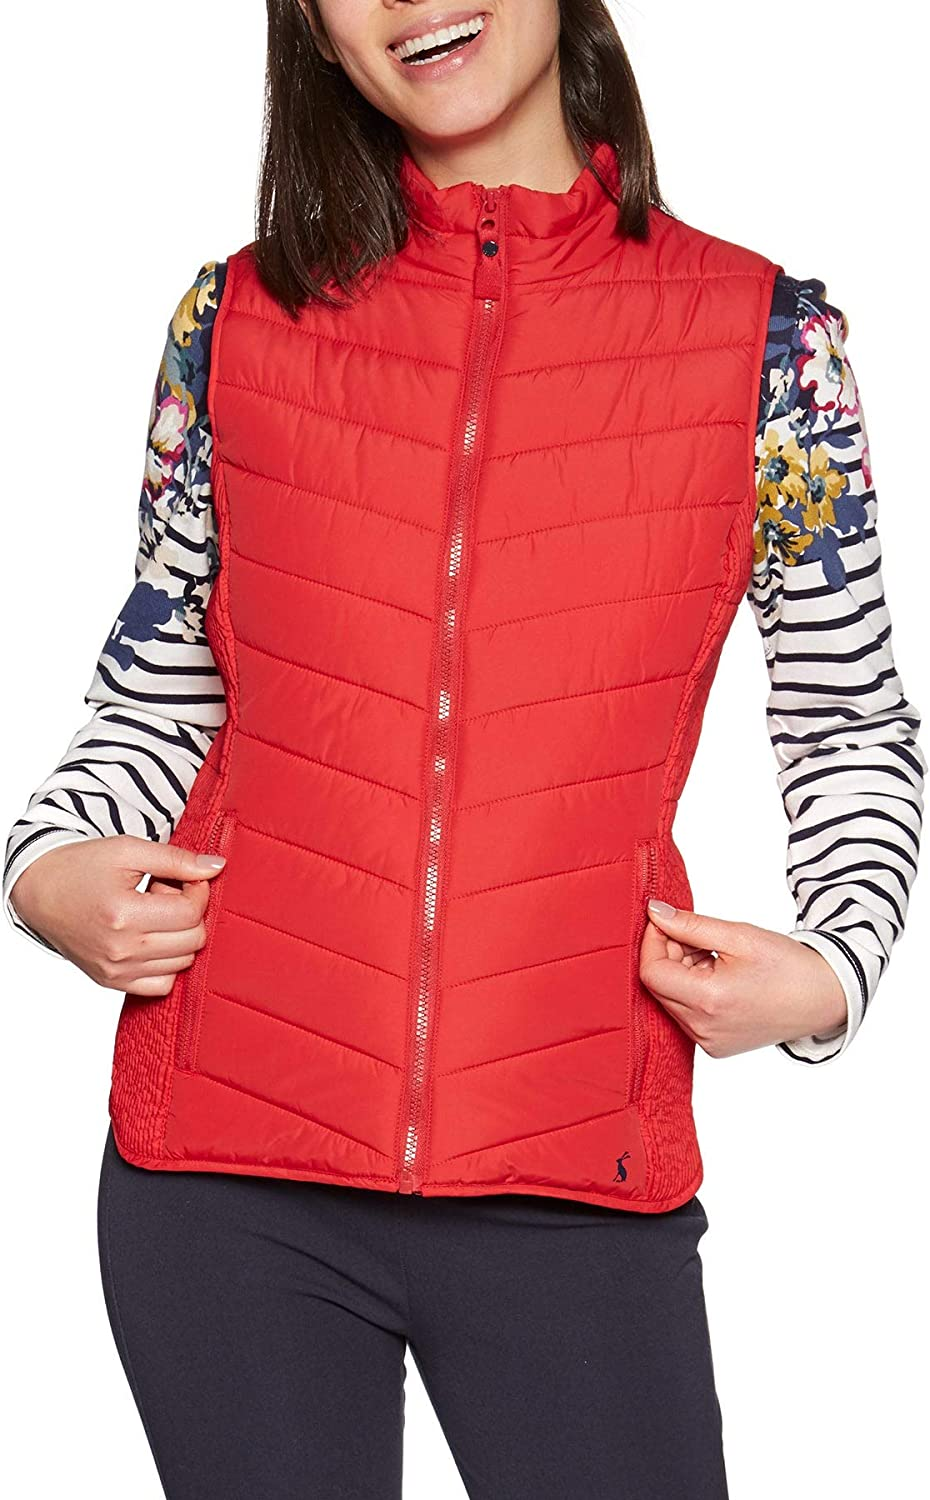 Joules Fallow Red Padded Gilet with Funnel Neck Size 10